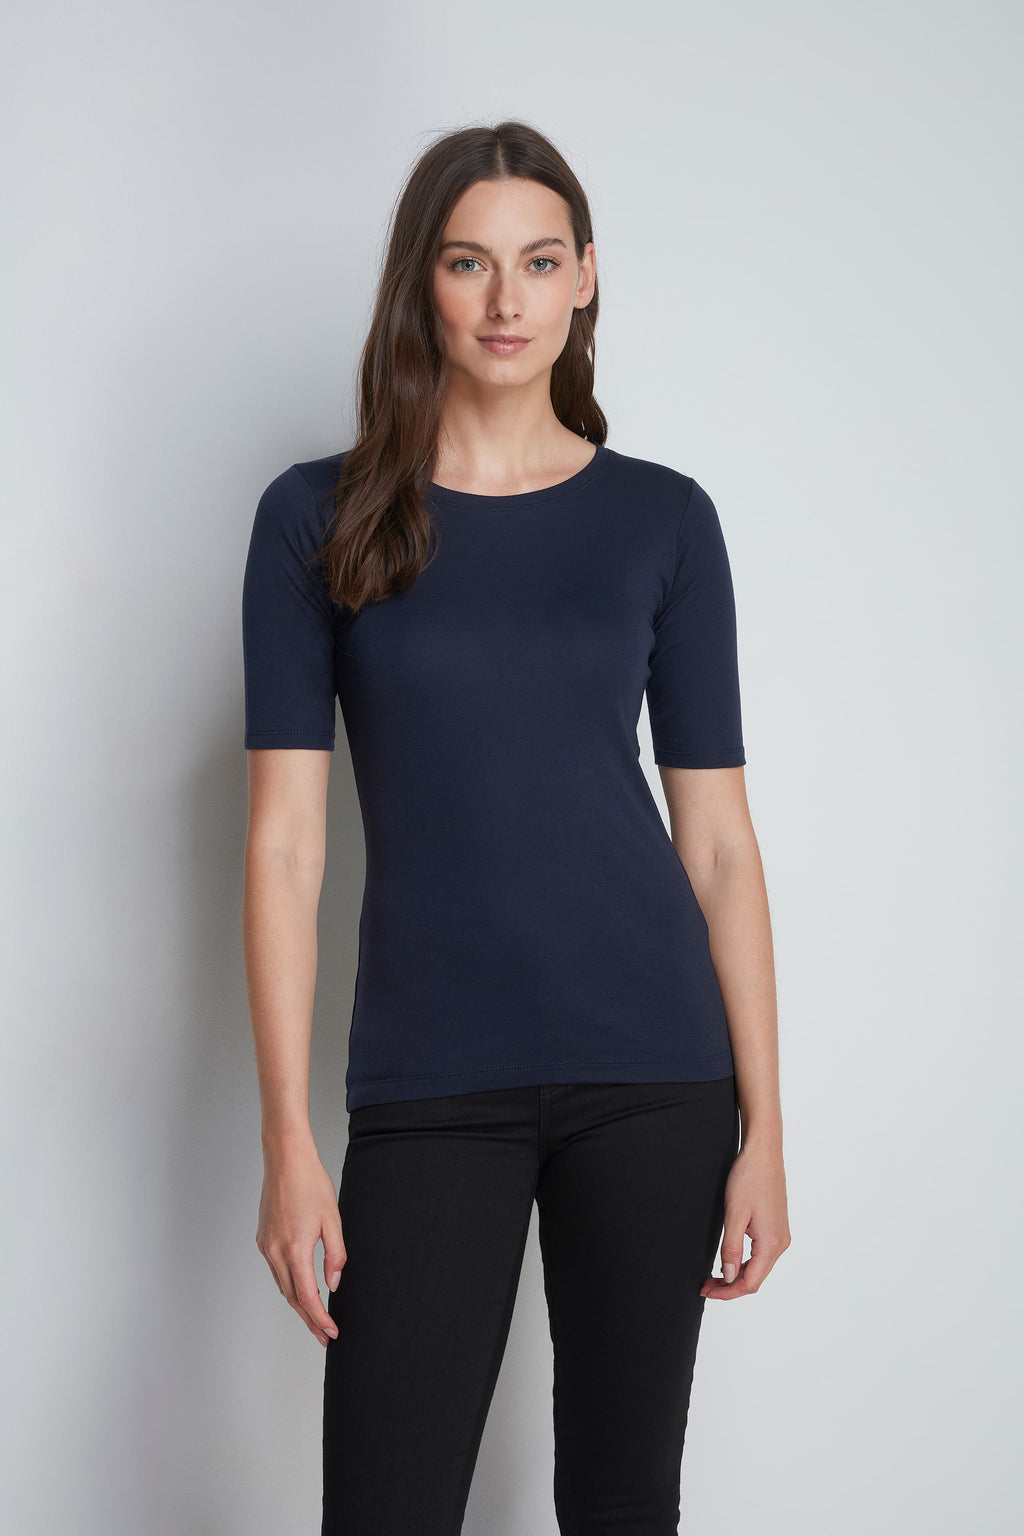 High Quality Half Sleeve Crew Neck T-Shirt - Comfortable Crew Neck Cotton Modal Blend - Luxury Half Sleeve T-Shirt - Navy Half Sleeve Crew Neck T-Shirt